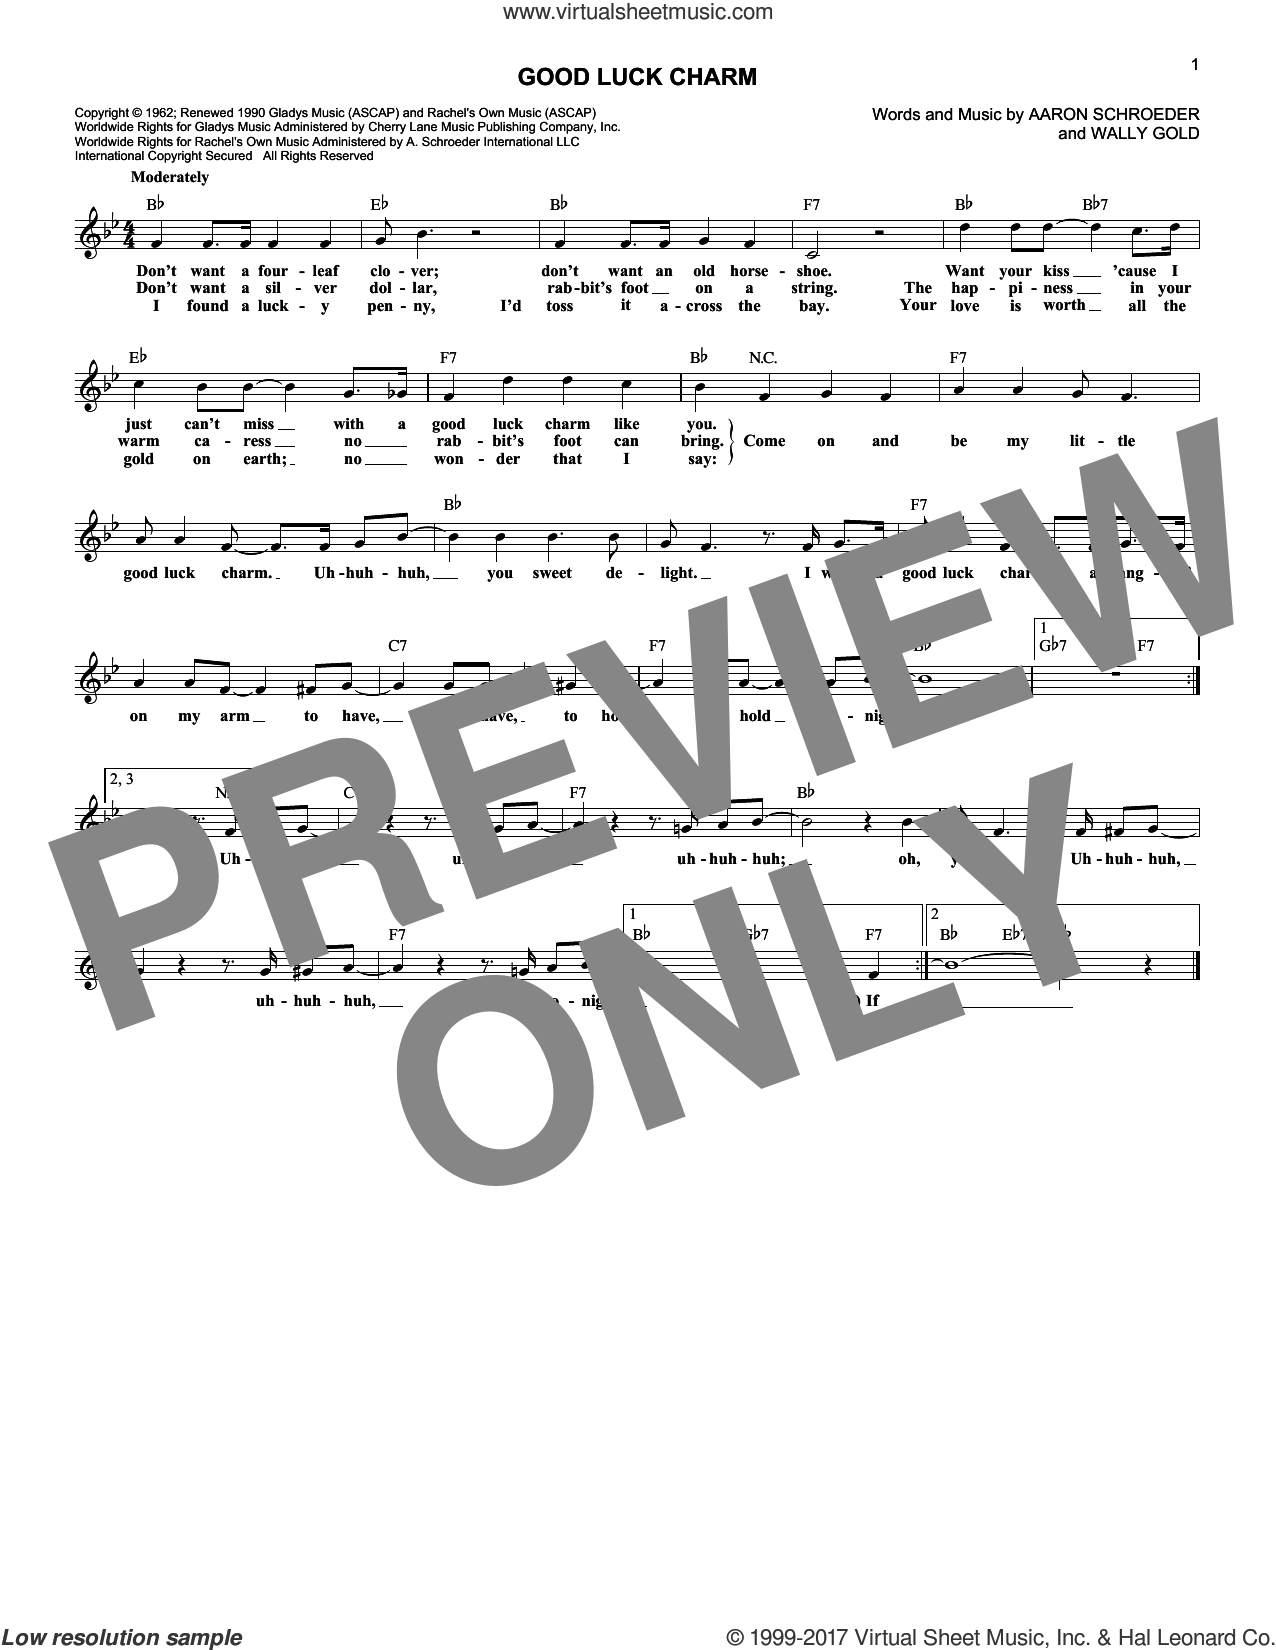 Good Luck Charm sheet music for voice and other instruments (fake book) by Elvis Presley, Aaron Schroeder and Wally Gold, intermediate